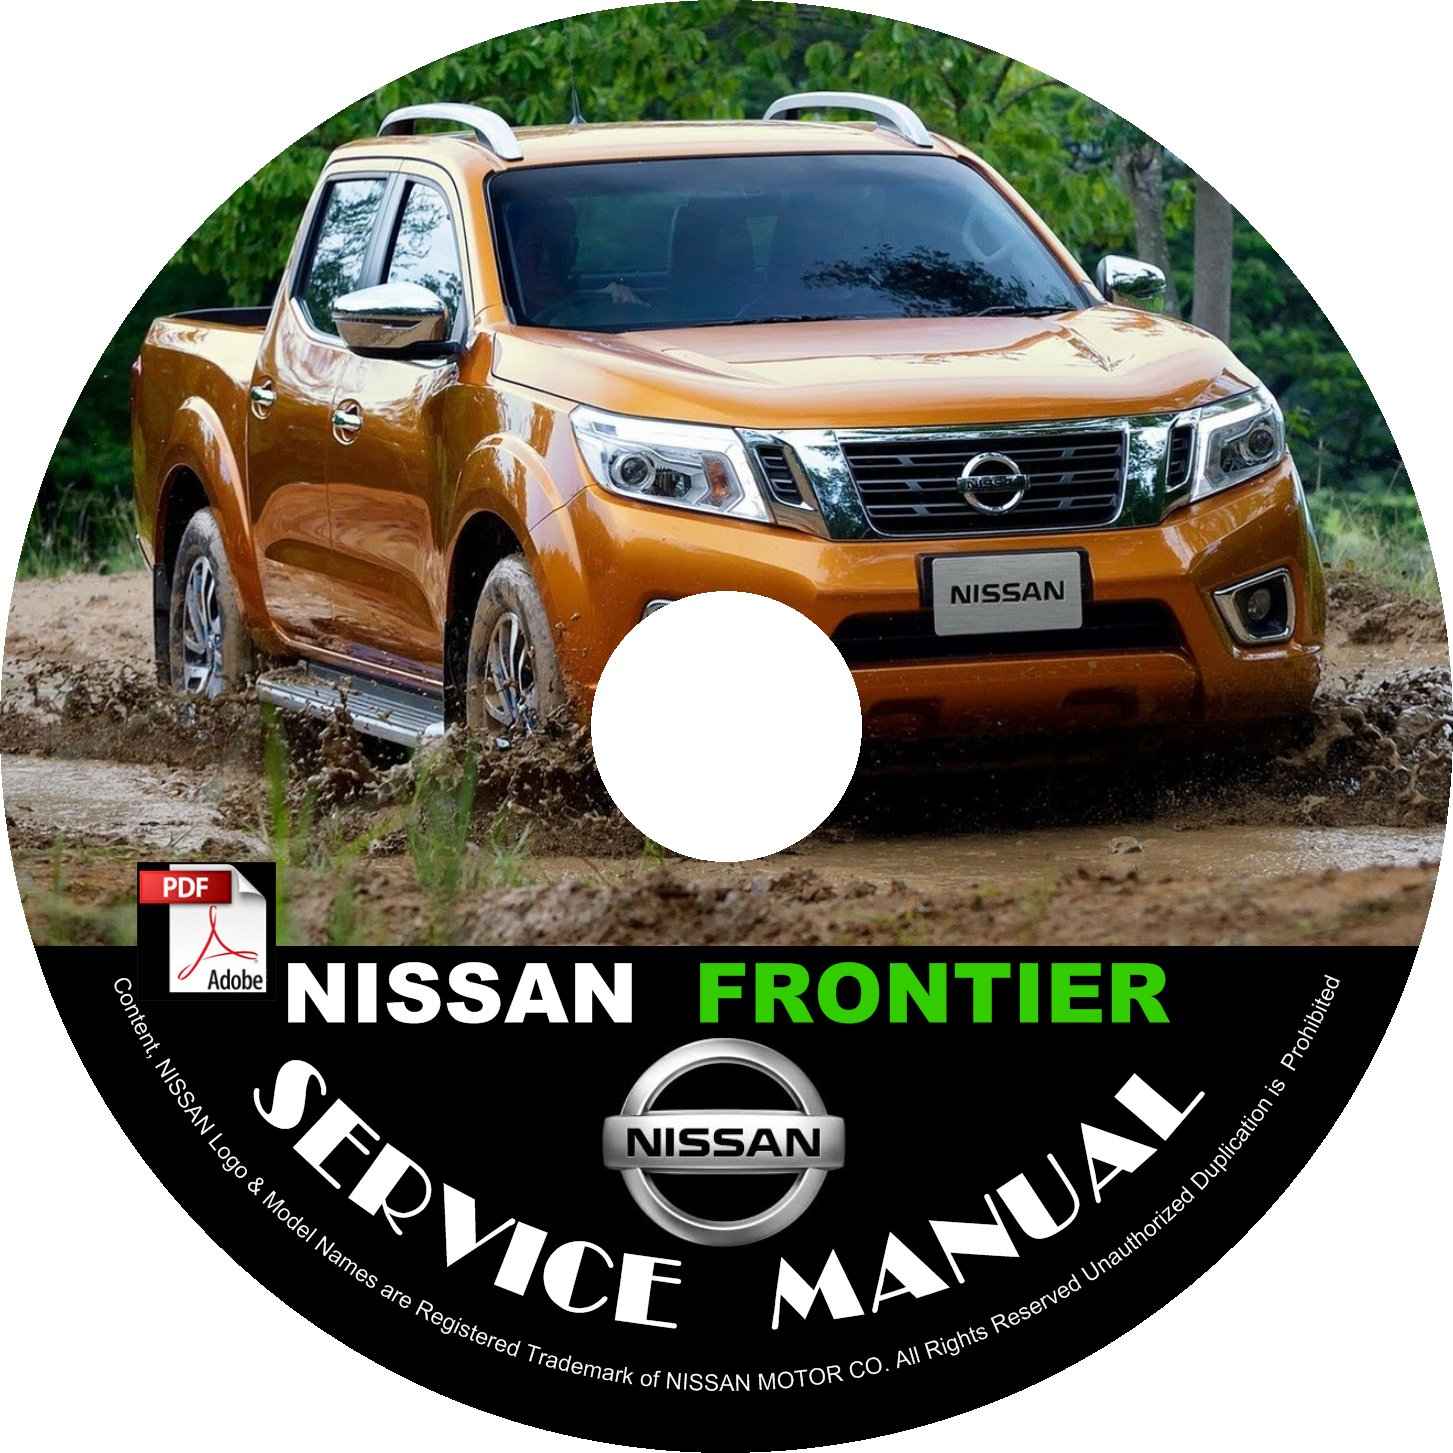 2017 Nissan Frontier Service Repair Shop Manual on CD Fix Repair Rebuild Workshop